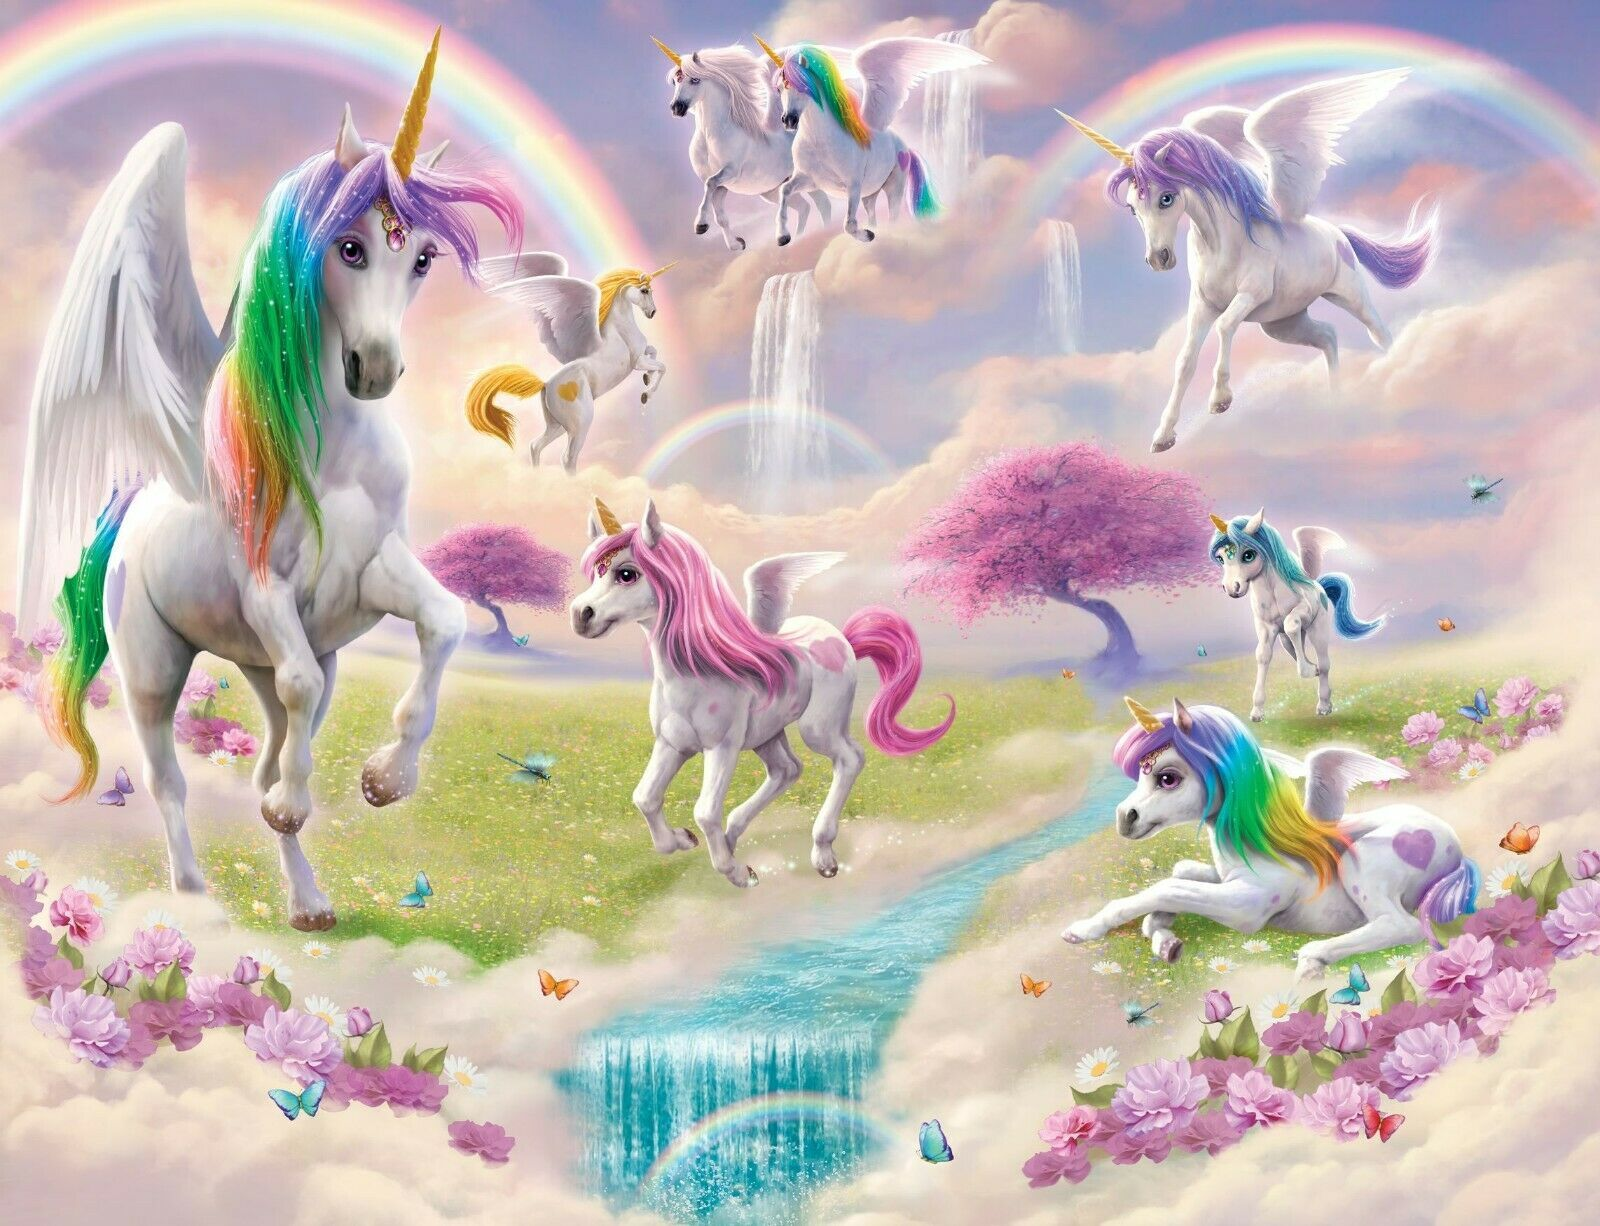 Magical Unicorn Wallpapers Top Free Magical Unicorn Backgrounds Wallpaperaccess